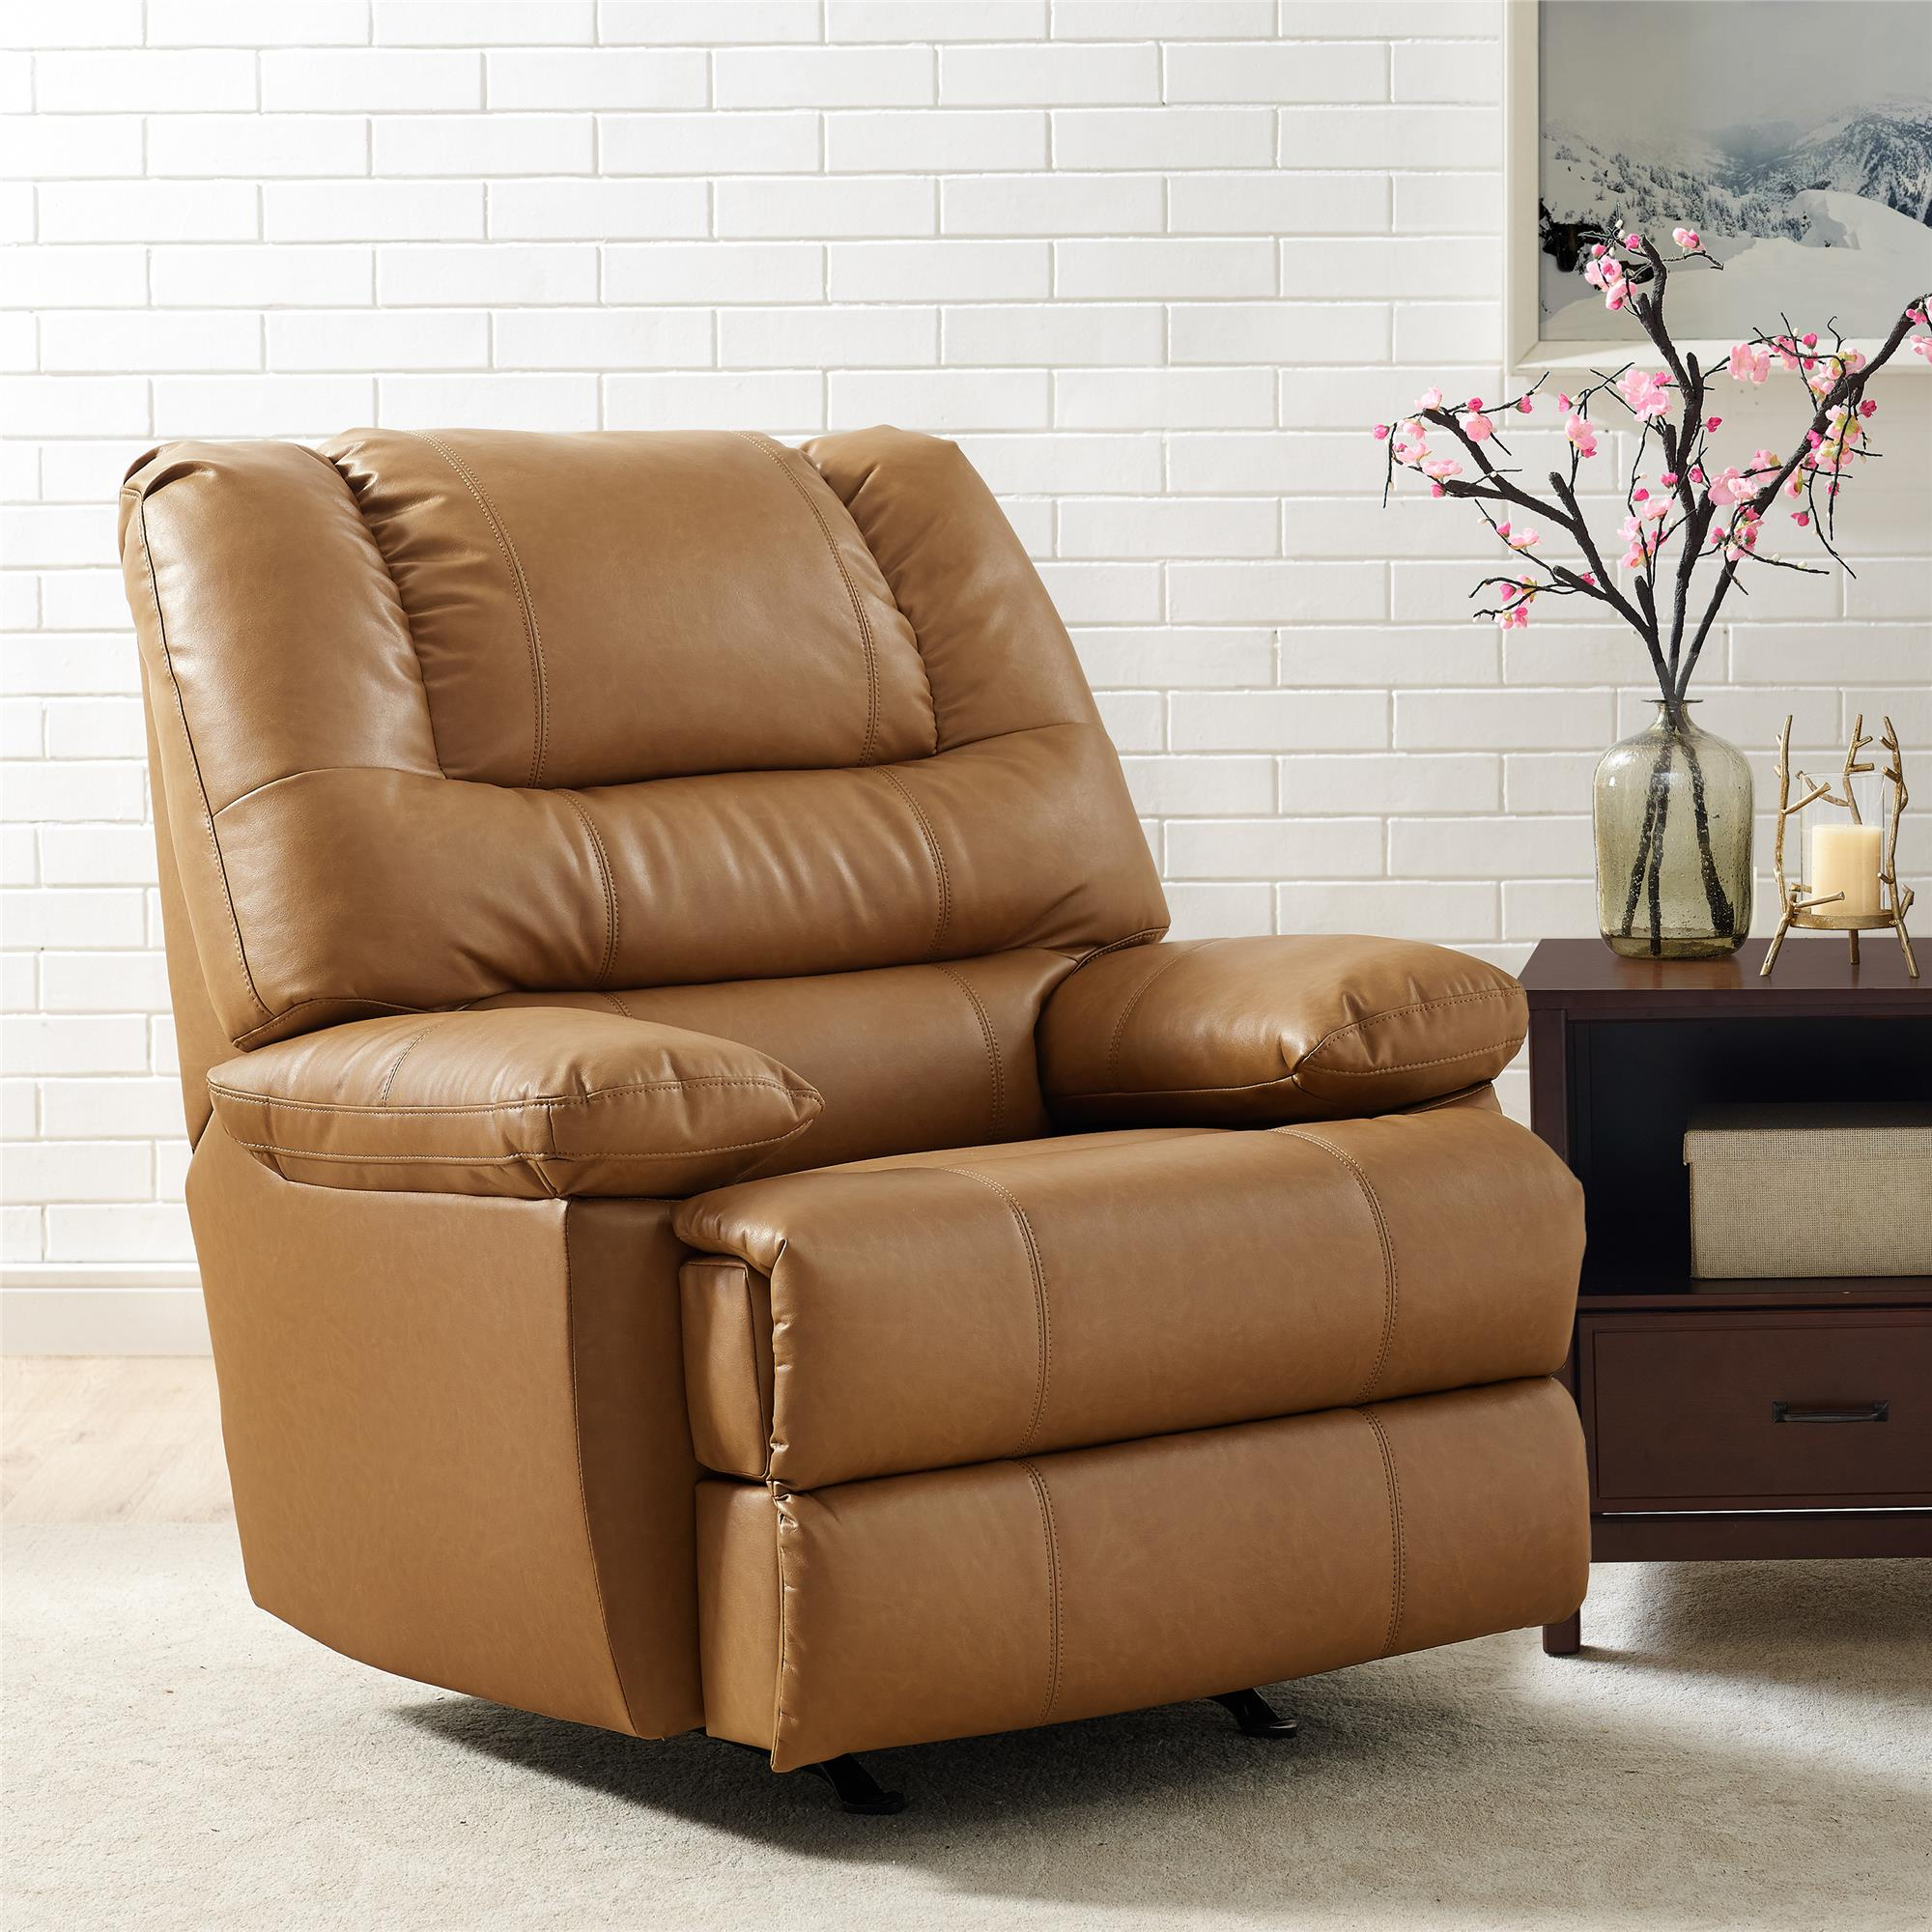 Better Homes & Gardens Moore Deluxe Rocking Recliner, Multiple Colors by Dorel Asia